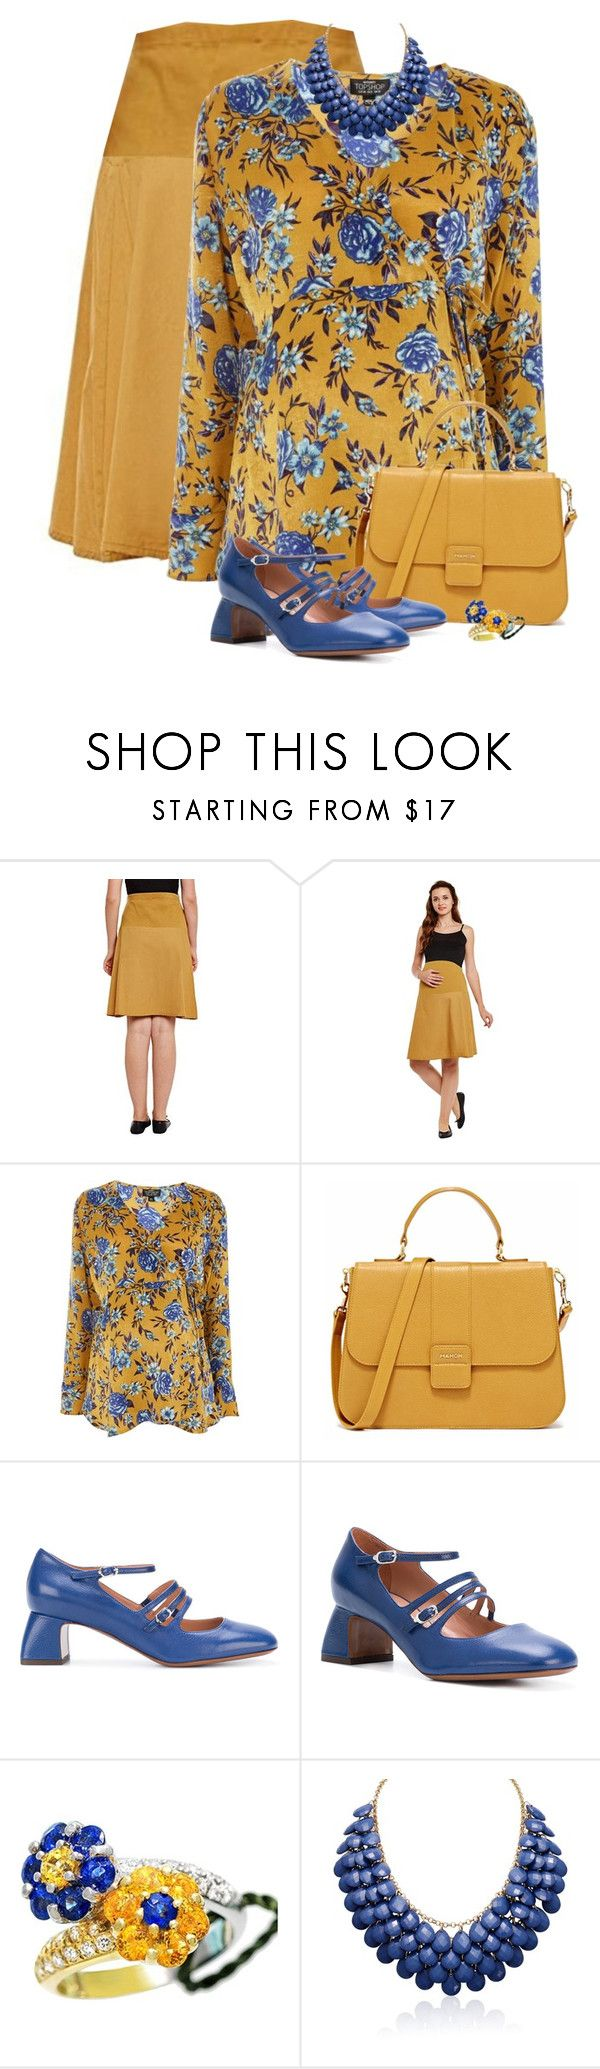 """Maternity Floral Wrap Top"" by dkelley-0711 ❤ liked on Polyvore featuring Topshop, L'Autre Chose, Gregg Ruth, Adoriana, topshop and GregRuth"